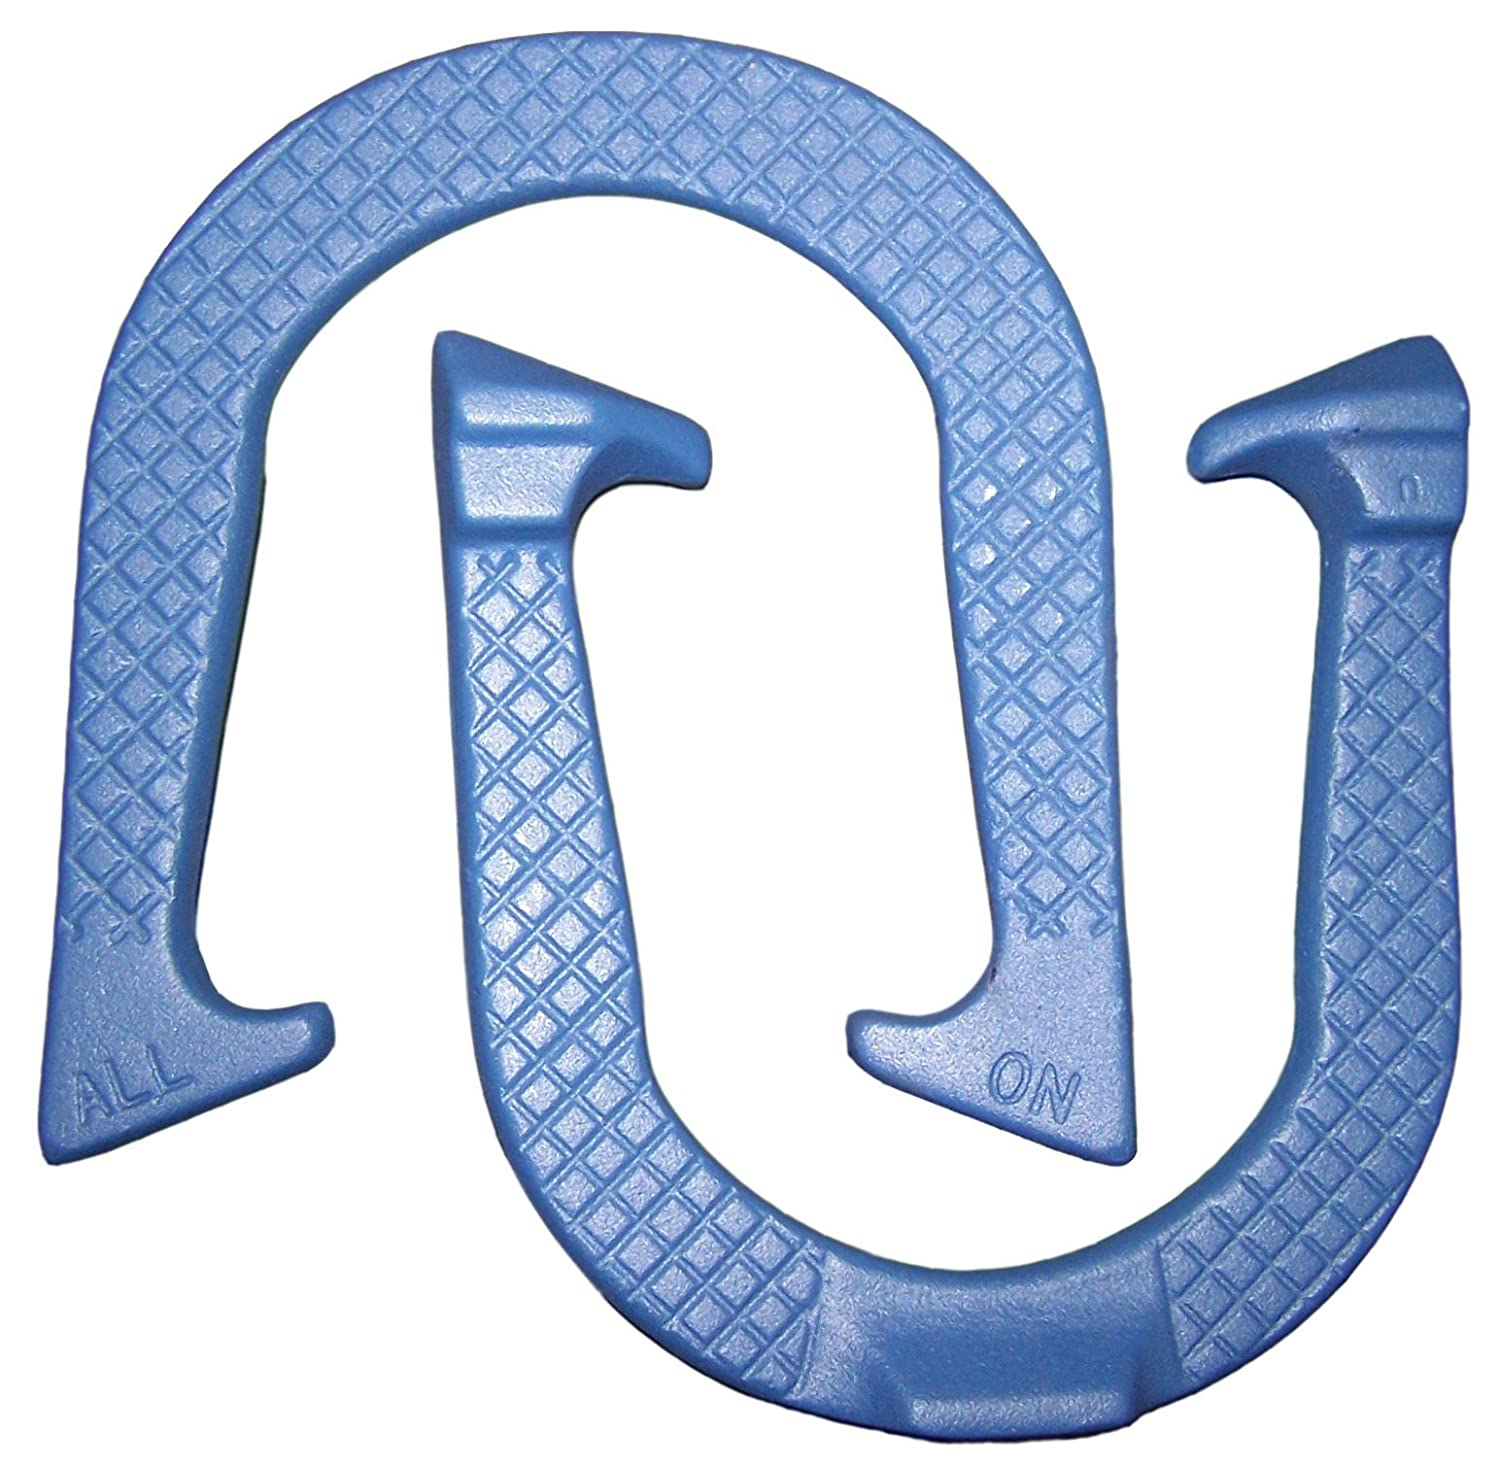 All-On Professional Pitching Horseshoes Made in The USA!